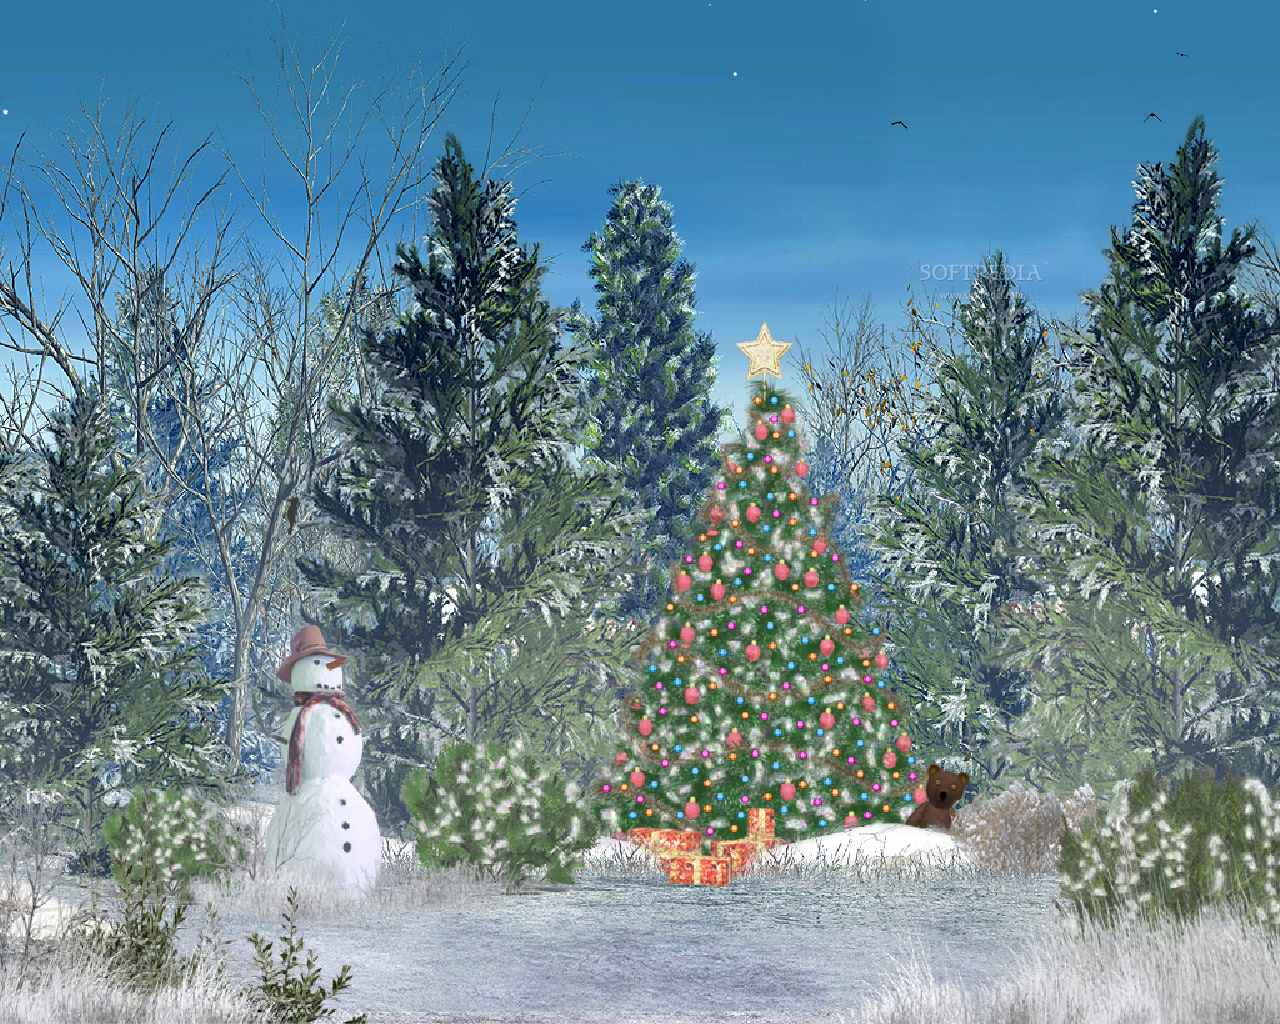 Animated Christmas Wallpaper Windows 7 Free Download Animated Christmas Desktop Background Free Desktop Wallpaper